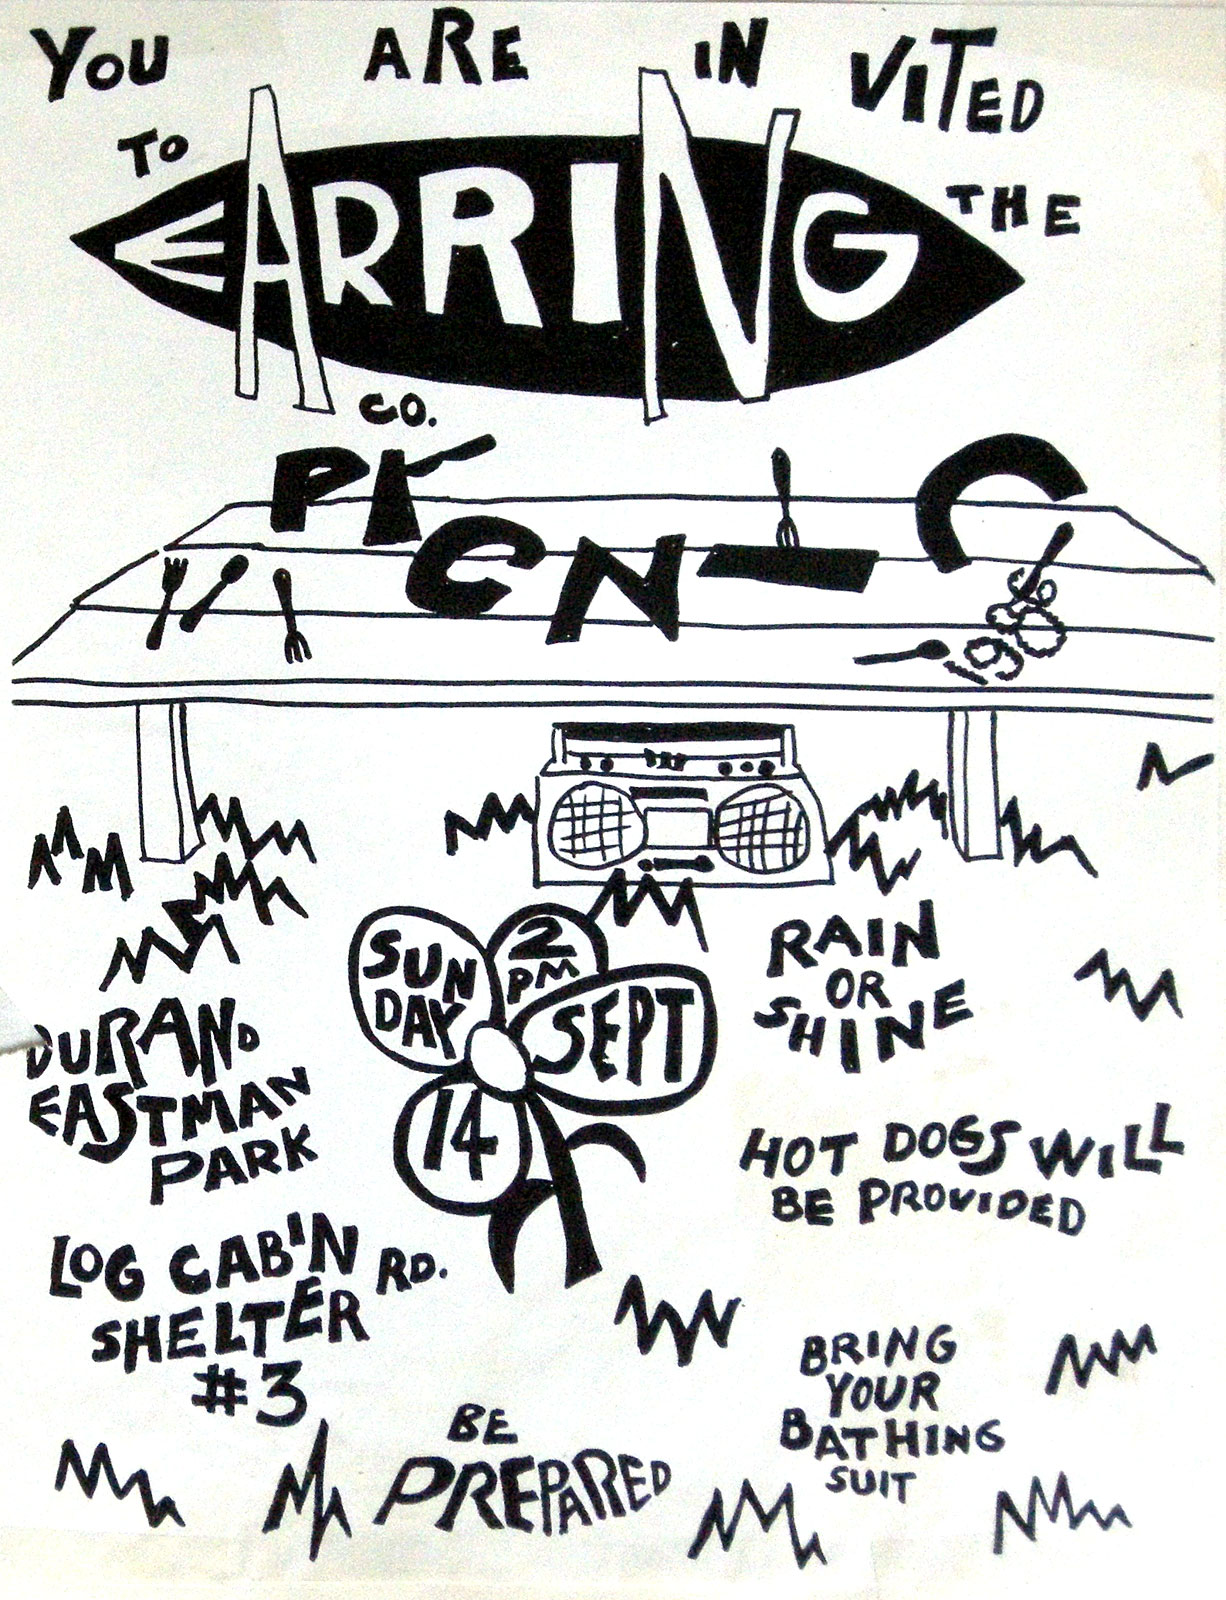 Earring Records Company Picnic invitation 1986